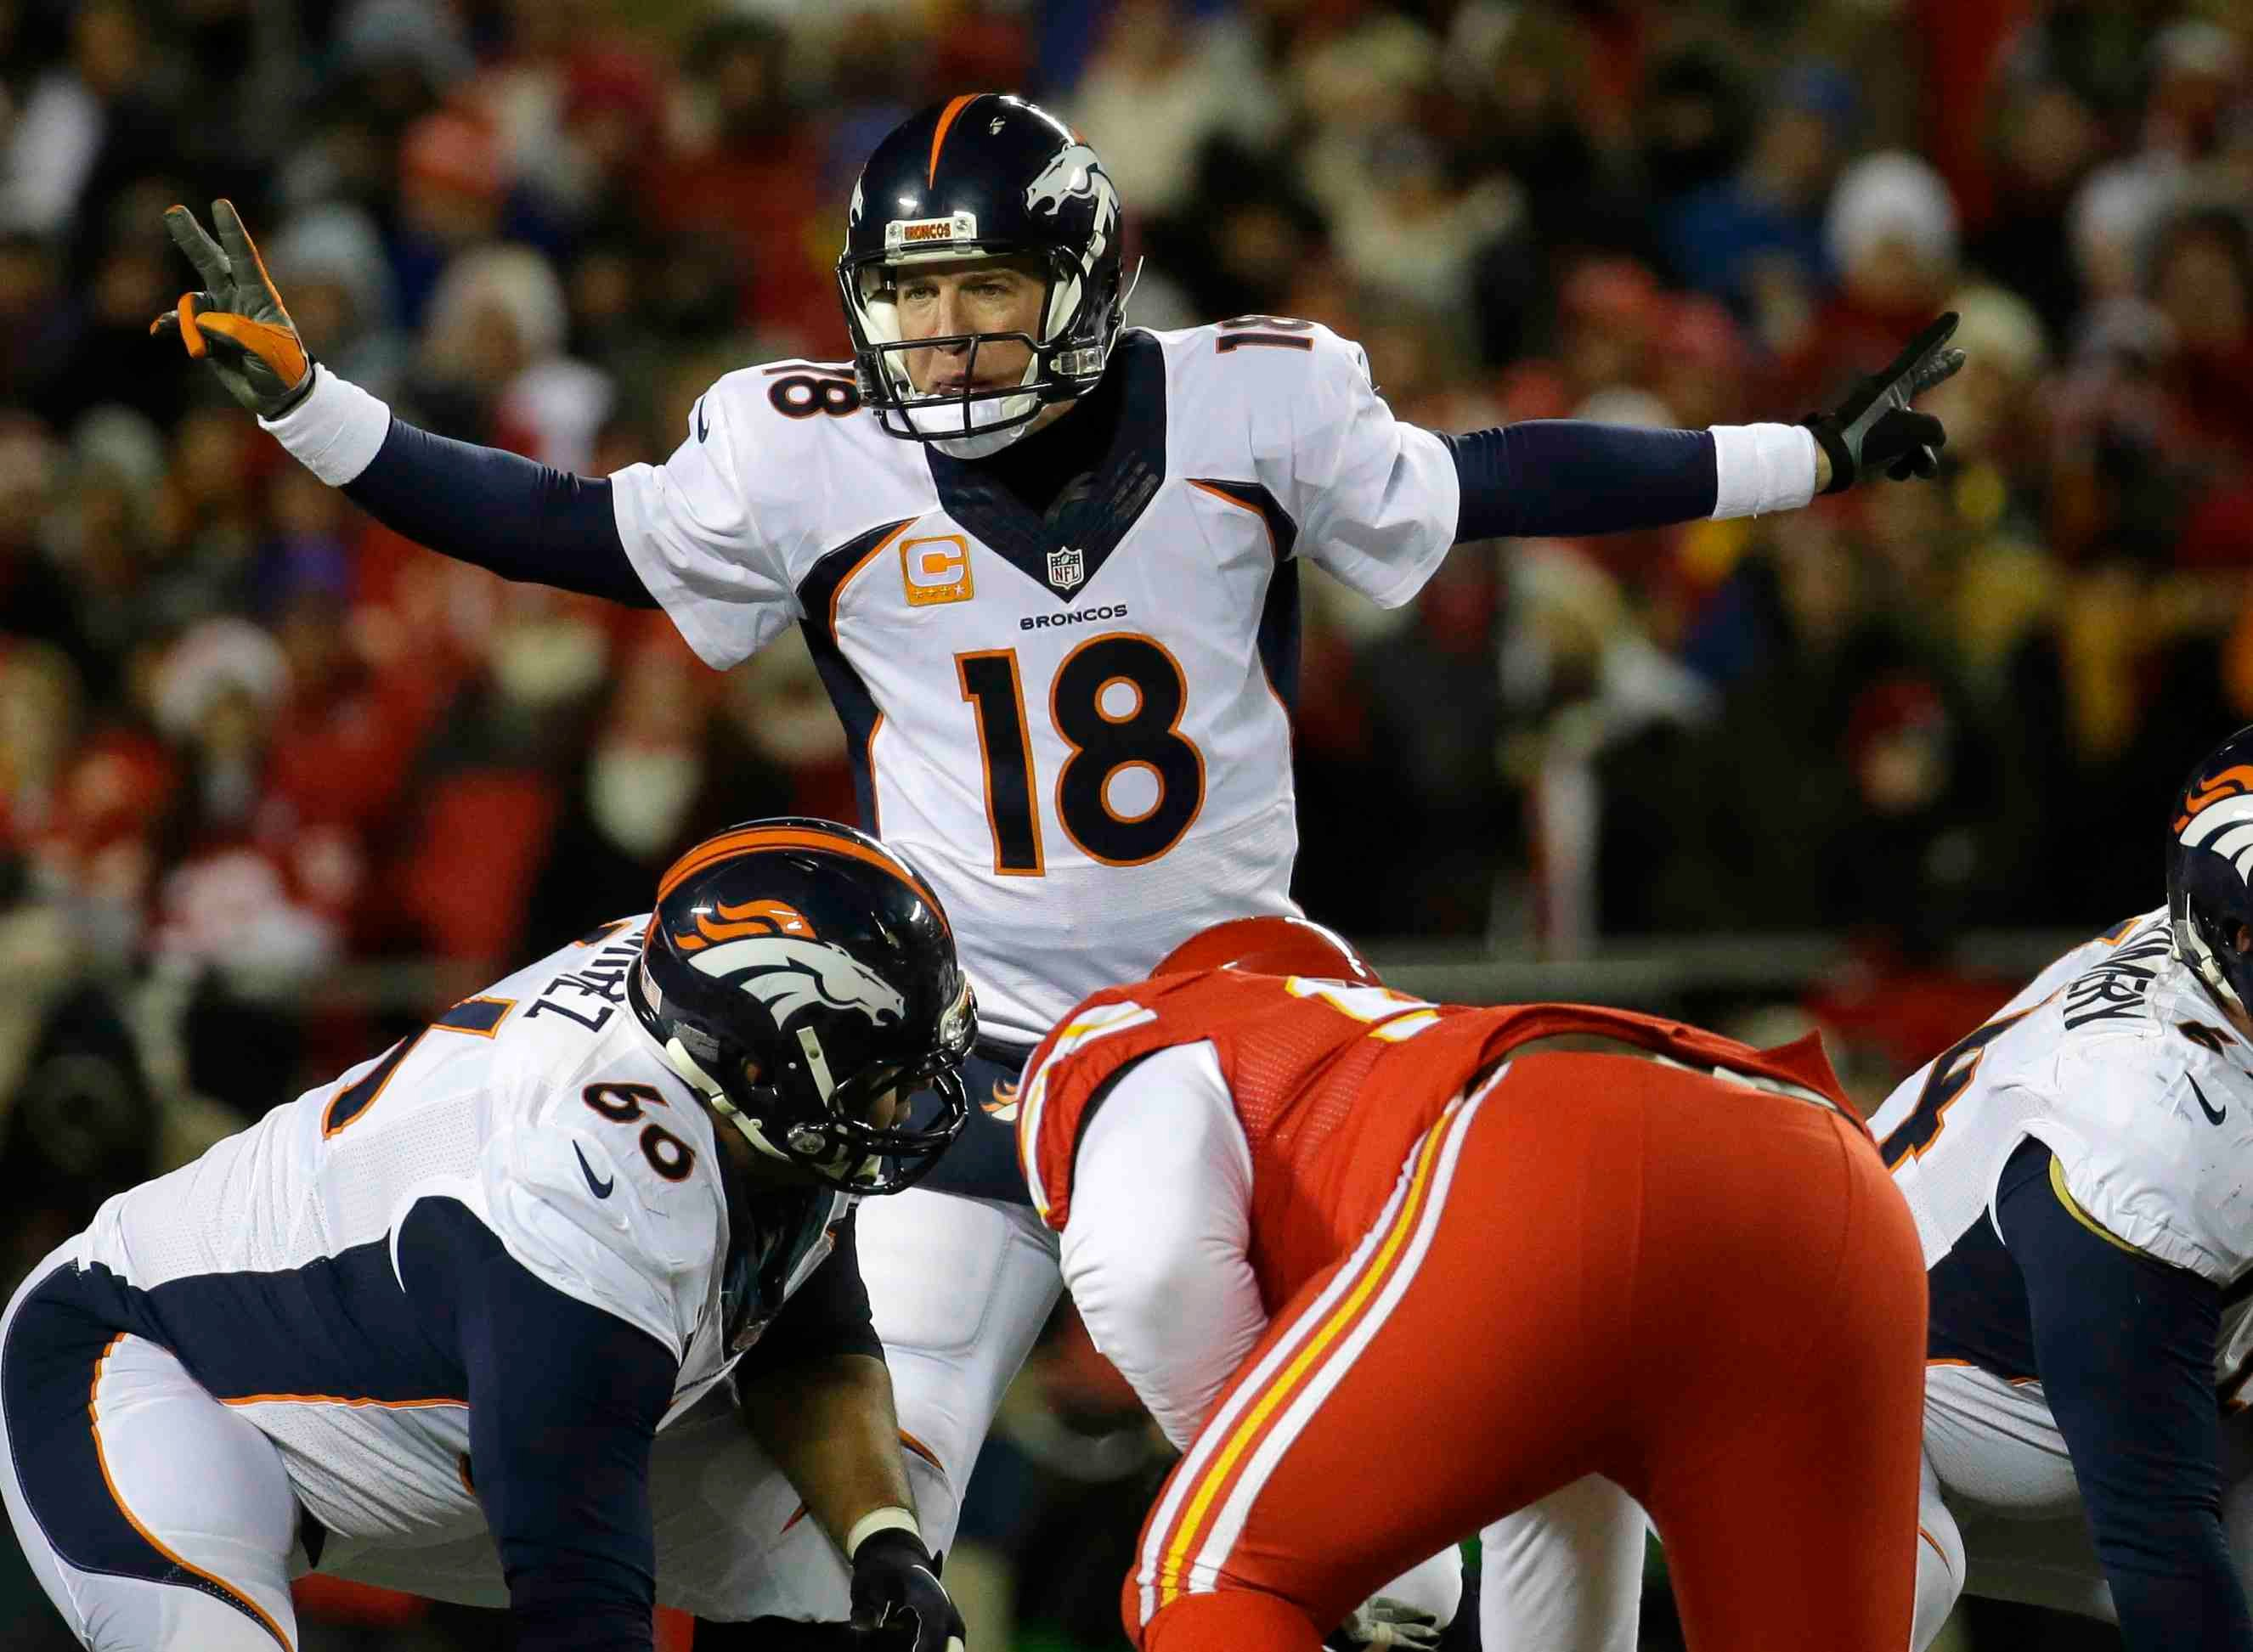 Peyton Manning leads Broncos offense against Chiefs at Arrowead Sunday night (AP)